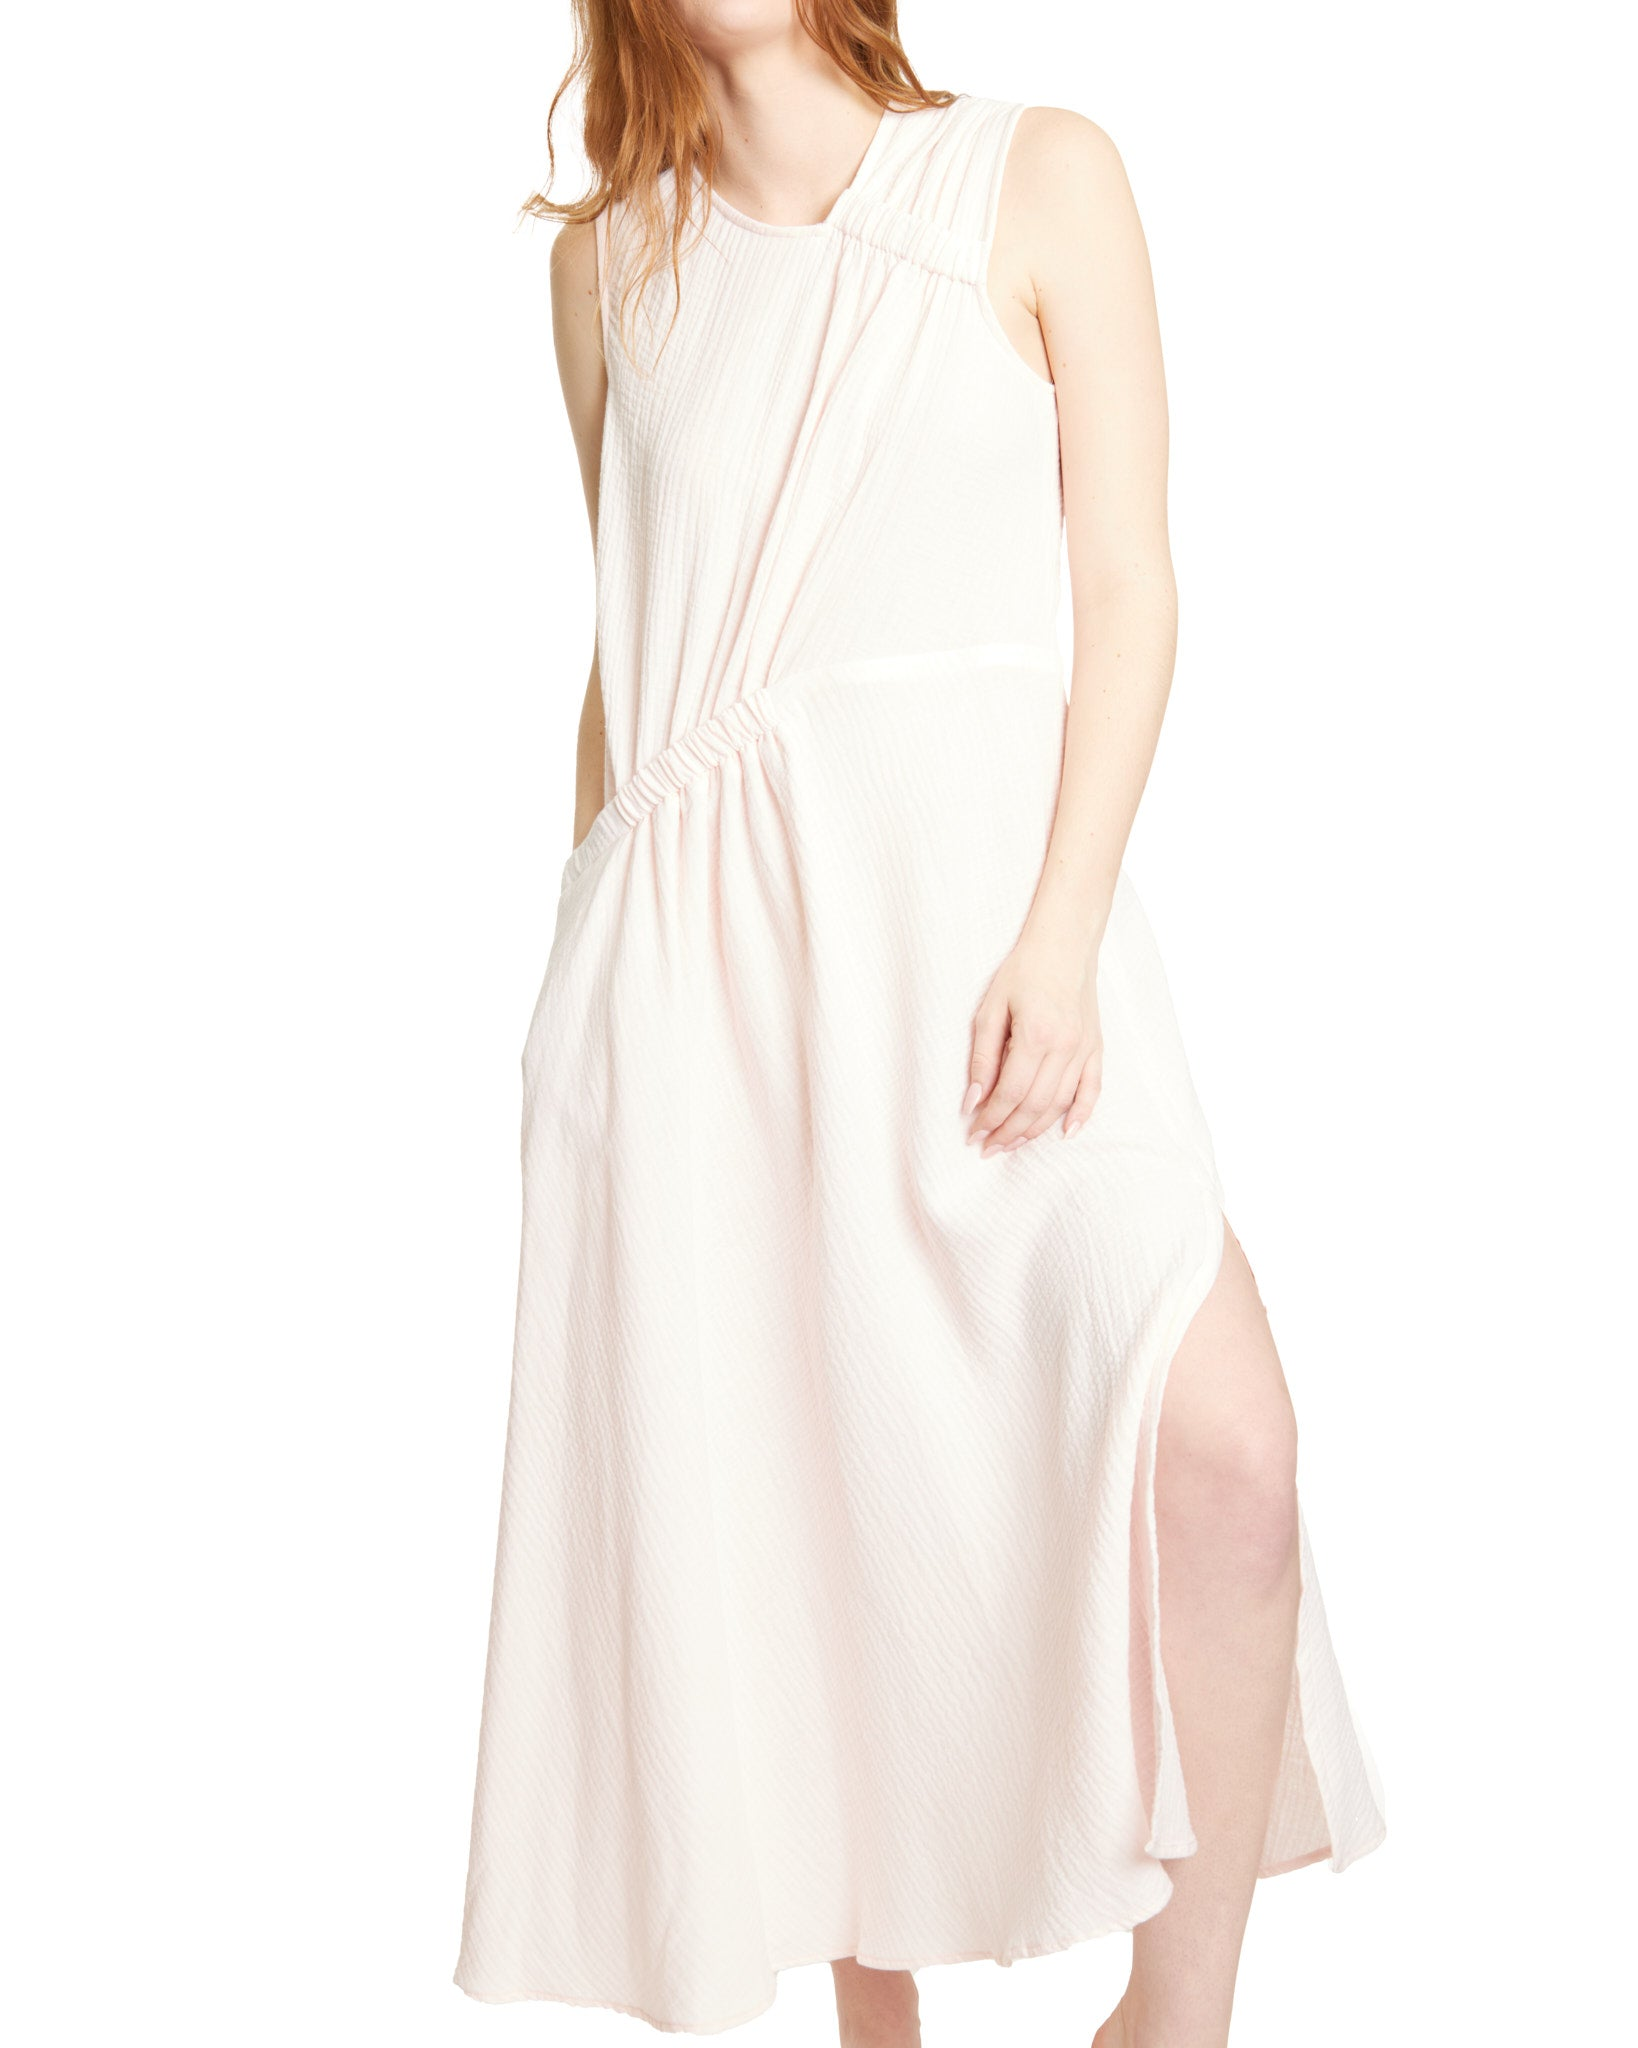 RACHEL COMEY SLICE DRESS